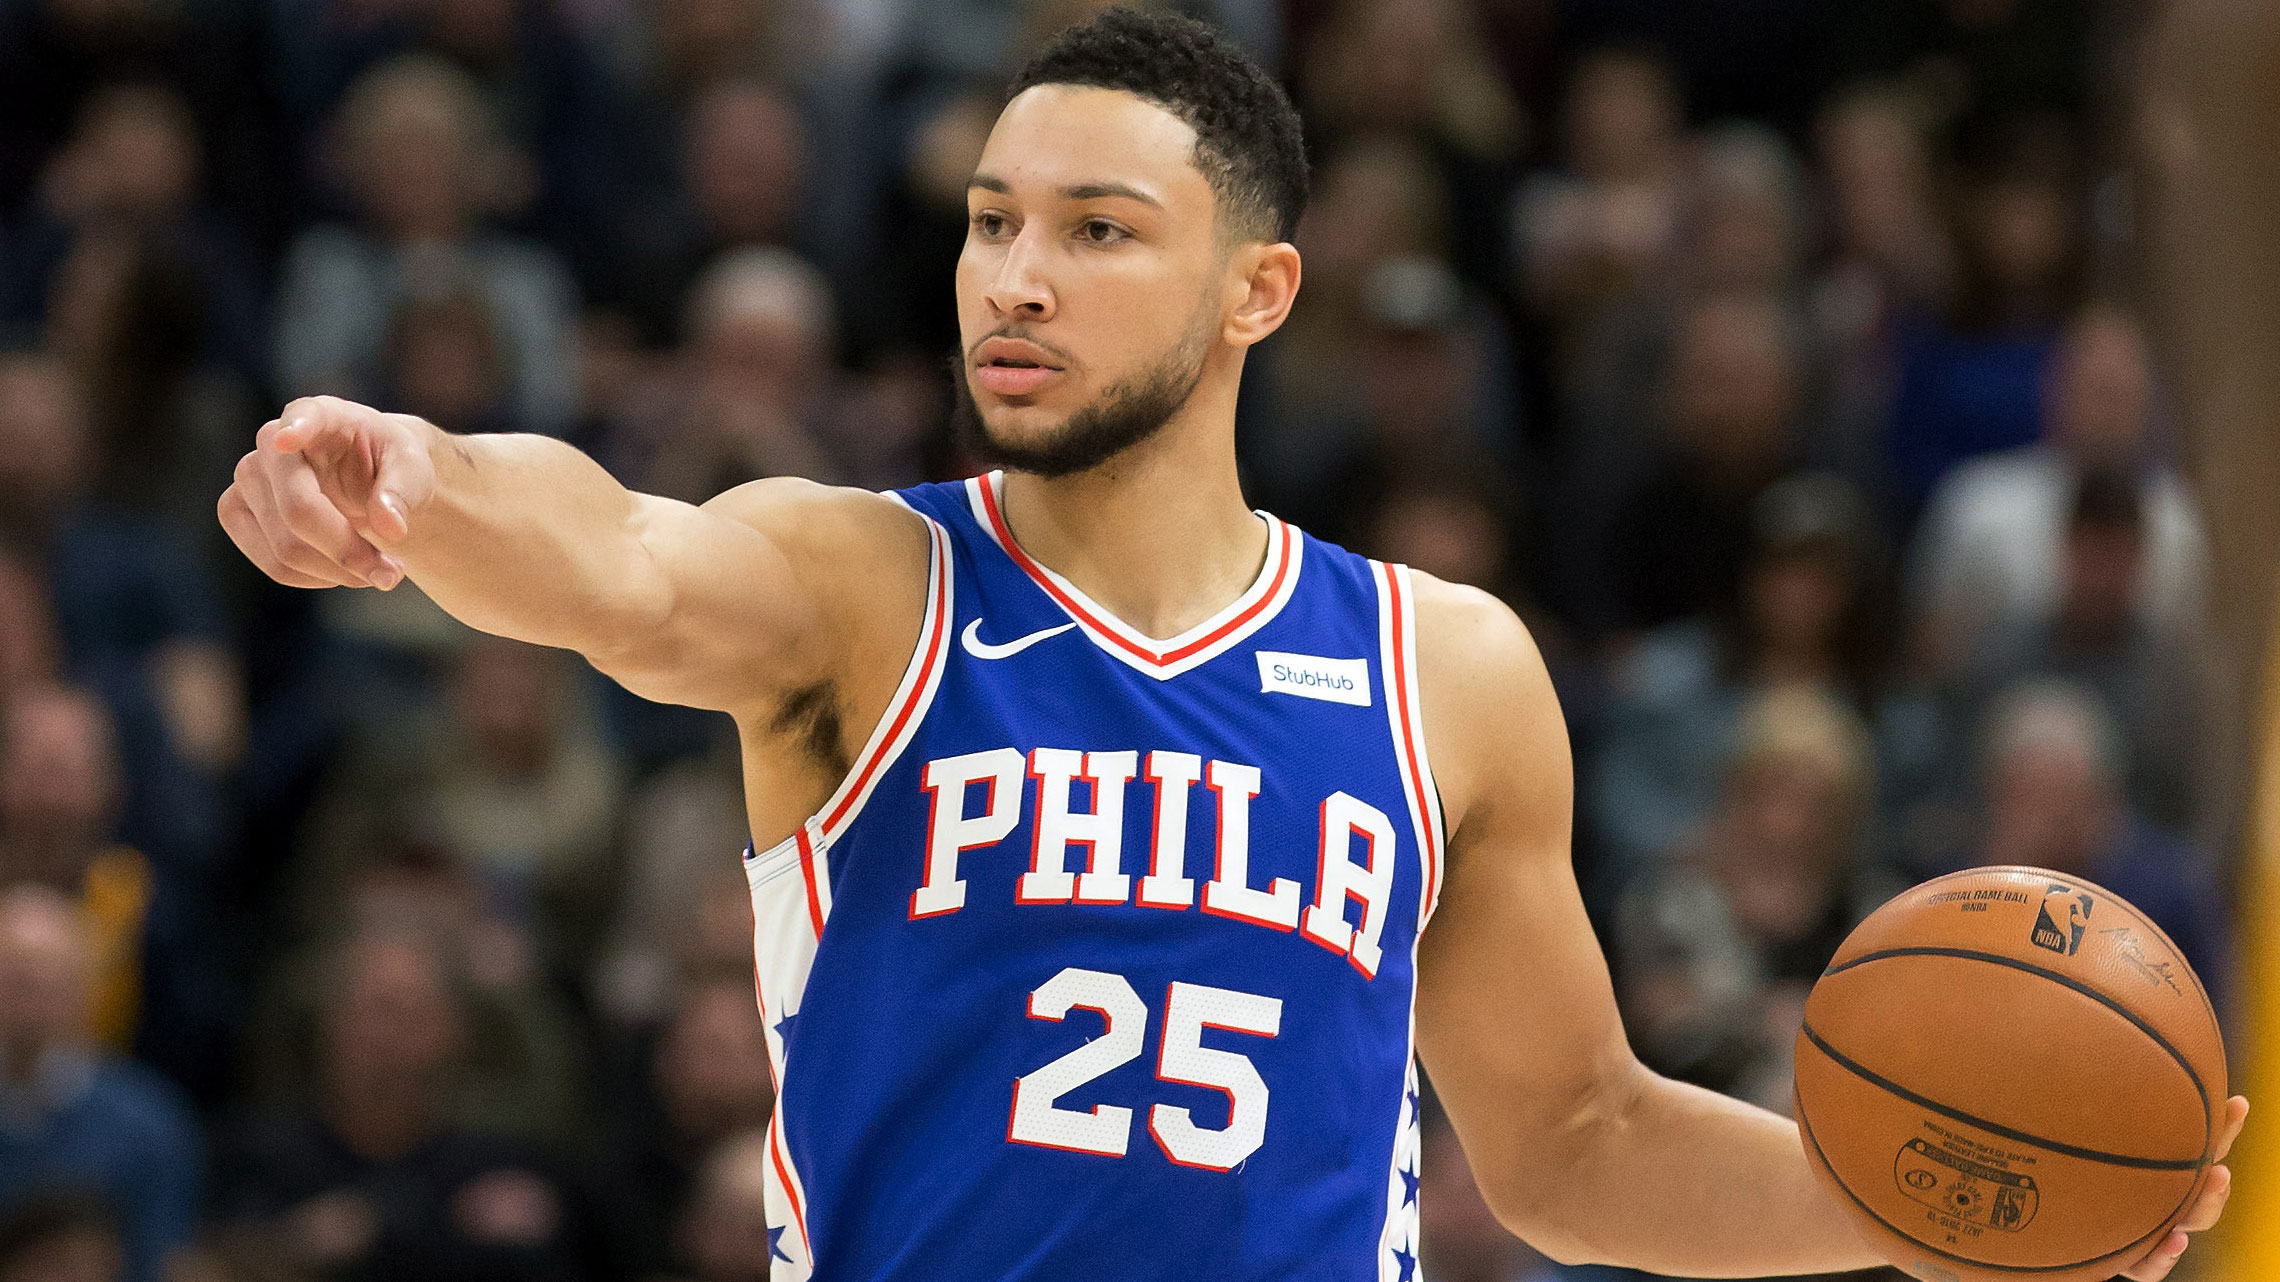 Ben Simmons snubbed as All-Star starter